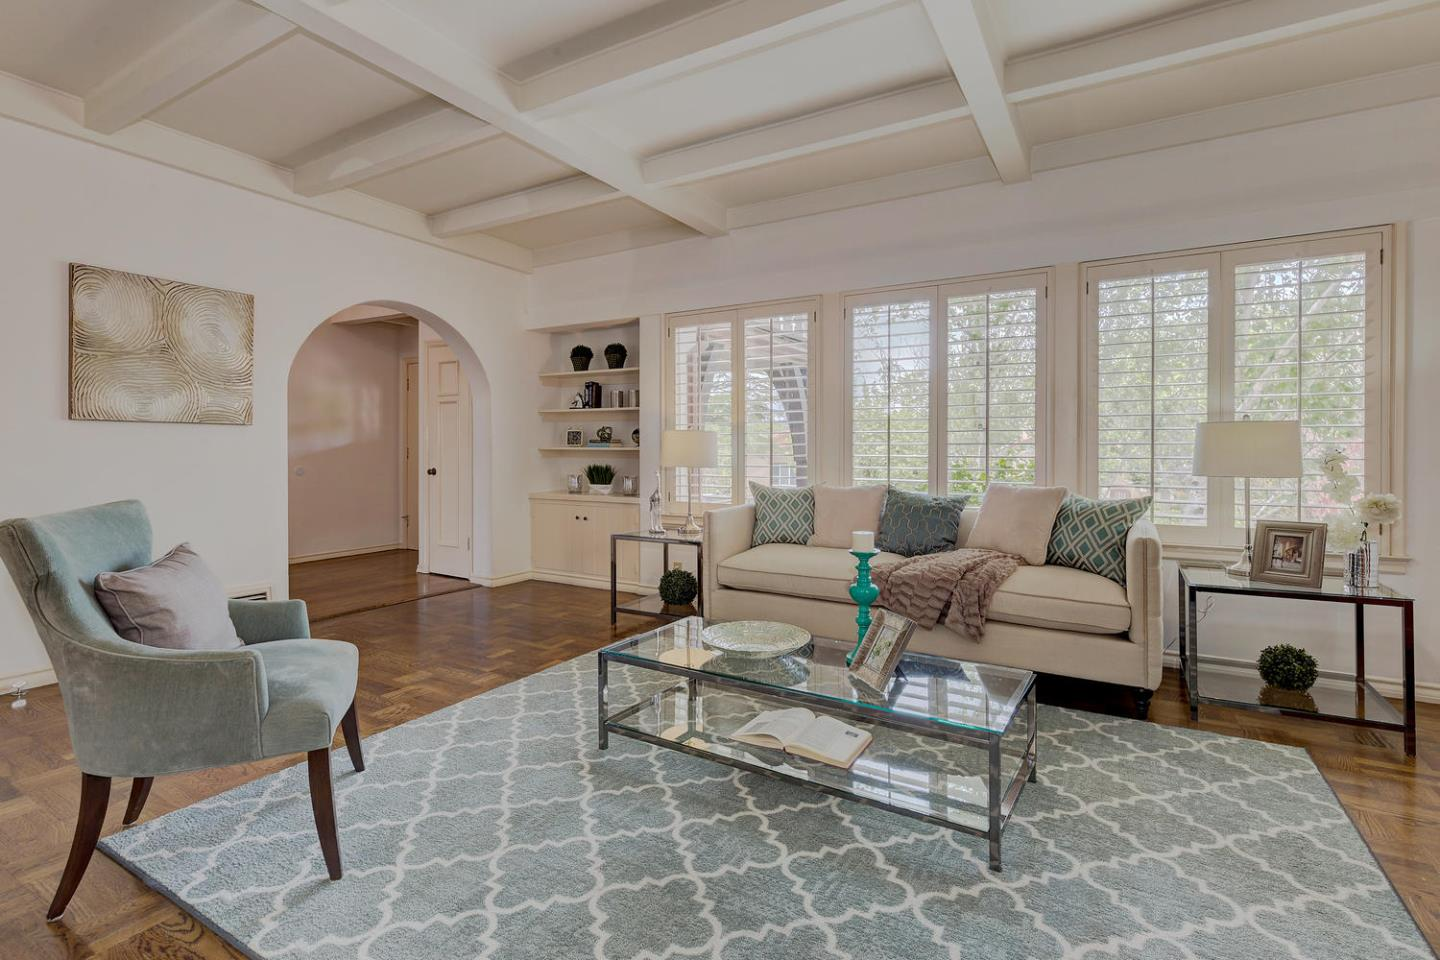 Additional photo for property listing at 731 Hillcrest Blvd  MILLBRAE, CALIFORNIA 94030